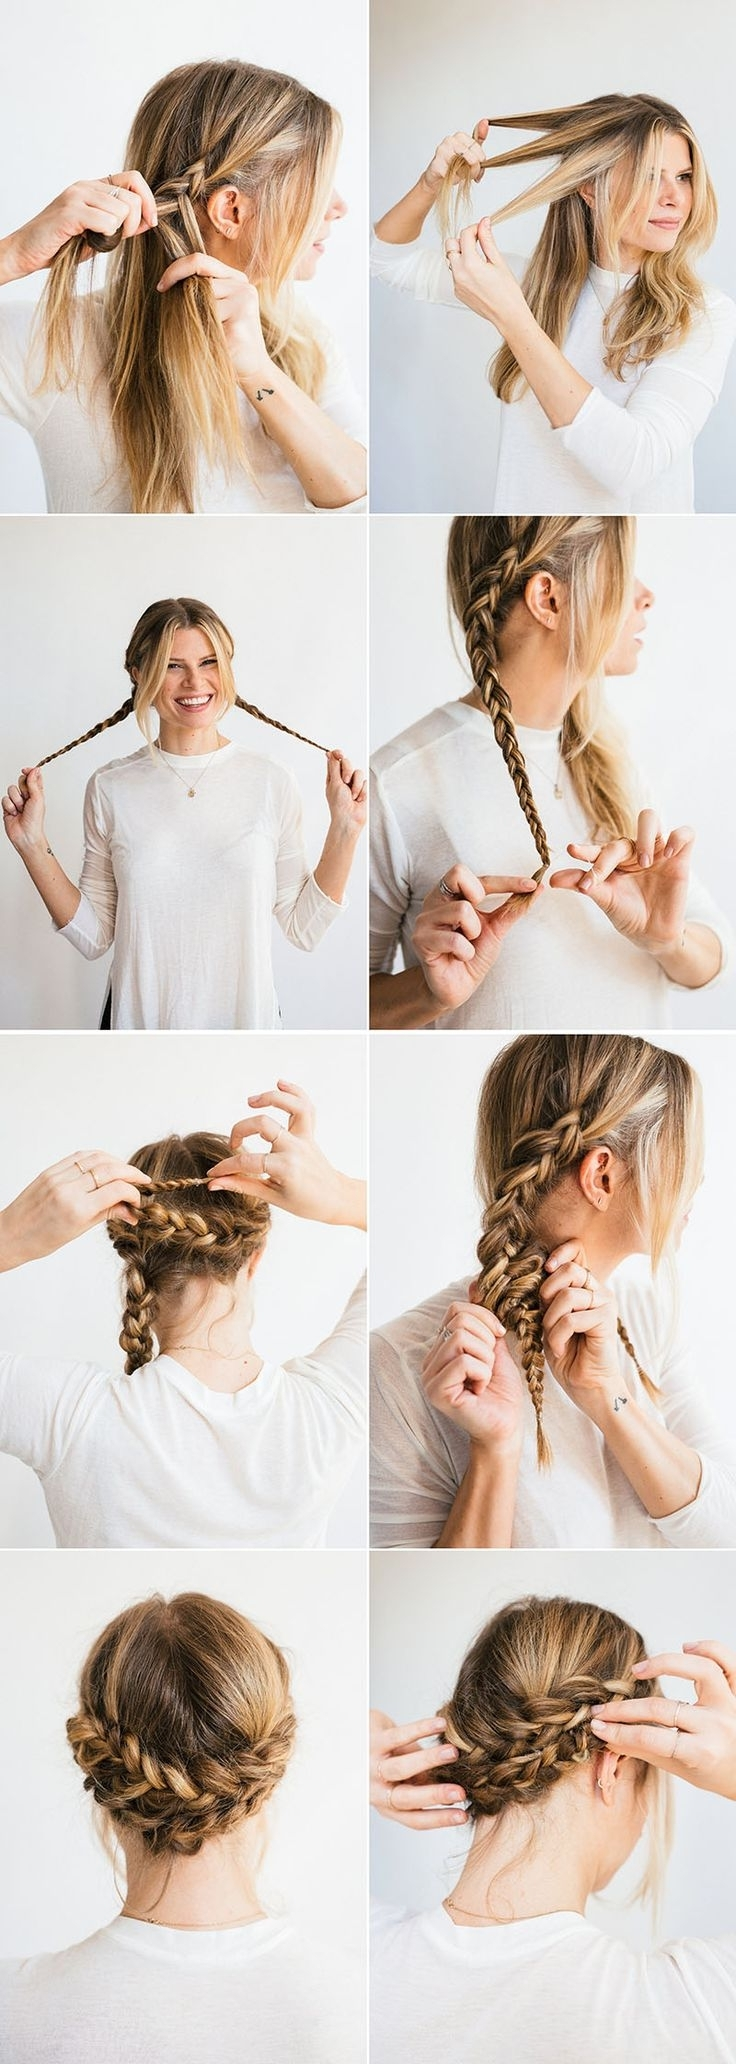 Easy To Do Hairstyles For Long Hair Cute Prom Styles Buns Stock Intended For Easy Braid Updo Hairstyles (Gallery 8 of 15)